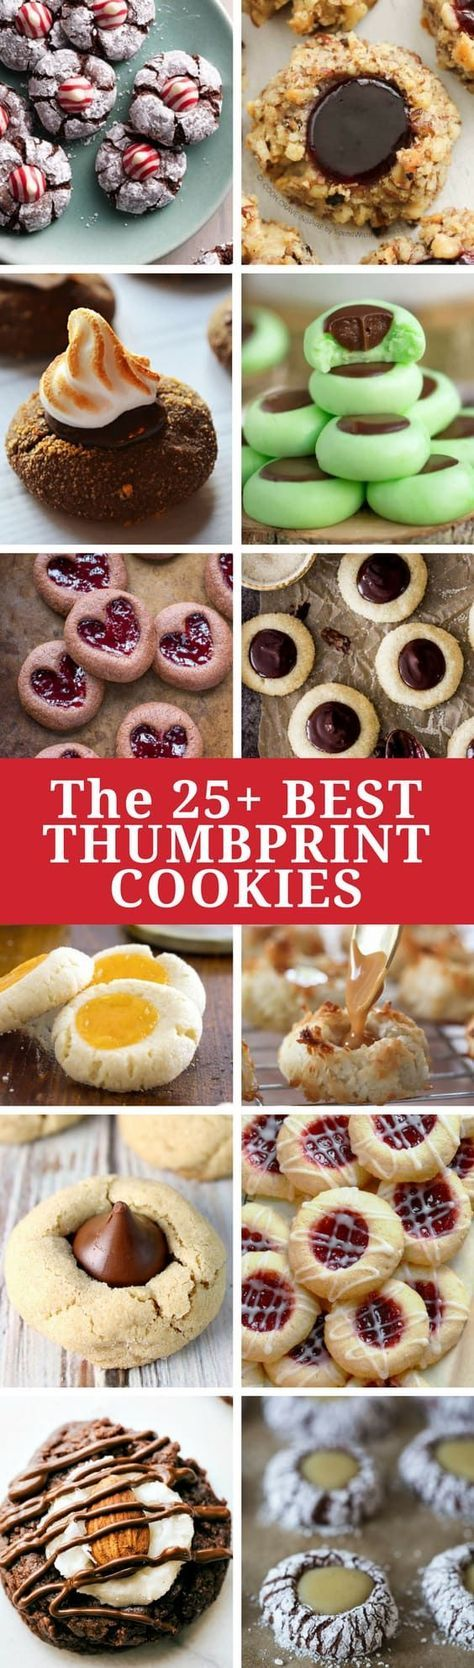 25+ Best Thumbprint Cookies ~ every holiday cookie assortment needs one or two (or three!) great thumbprint cookies, and we've gathered together the best of the best to share! www.savingdessert.com #savingroomfordessert #thumbprintcookies #christmascookies #holidaycookies #cookies